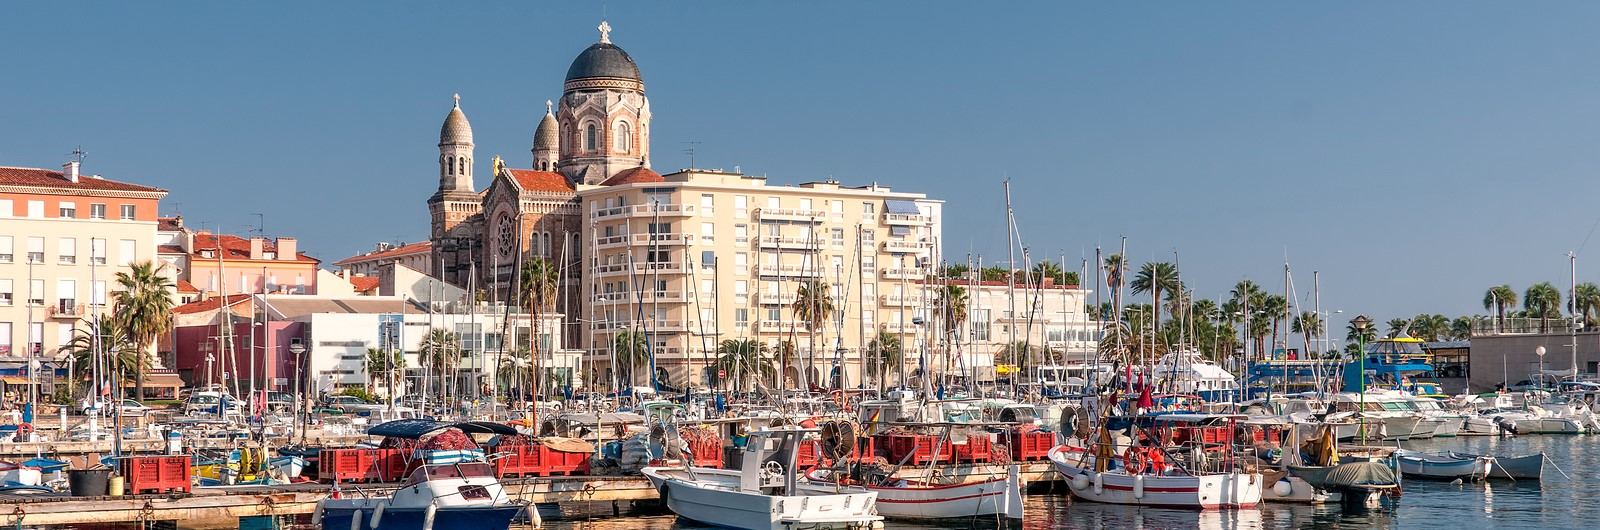 saintraphael city header